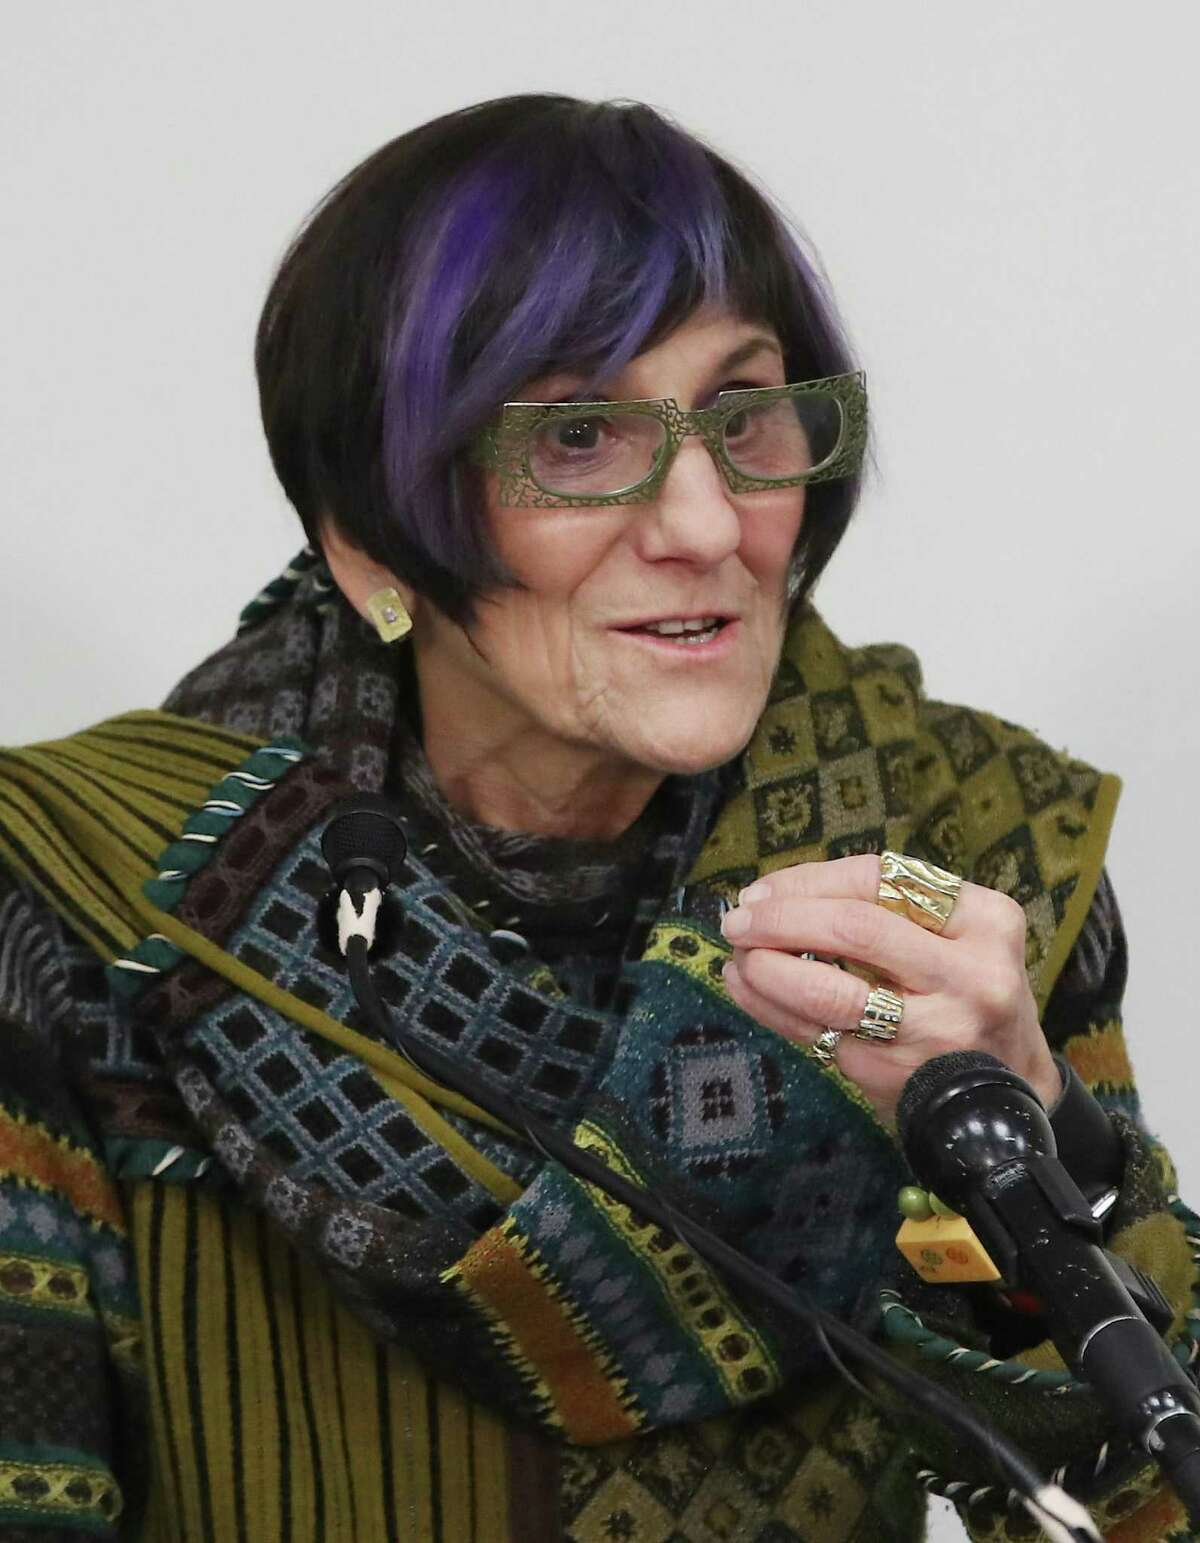 """WASHINGTON, DC - JANUARY 10: Rep. Rosa DeLauro, (D-CT), speaks during a news conference to reintroduce the """"Recall Unsafe Drugs Act,"""" at the U.S. Capitol on January 10, 2020 in Washington, DC. A new study published in the Journal of the American Medical Association by researchers at Valisure, the Memorial Sloan Kettering Cancer Center and Stanford University has found an association between ranitidine use and several forms of cancer. (Photo by Mark Wilson/Getty Images)"""